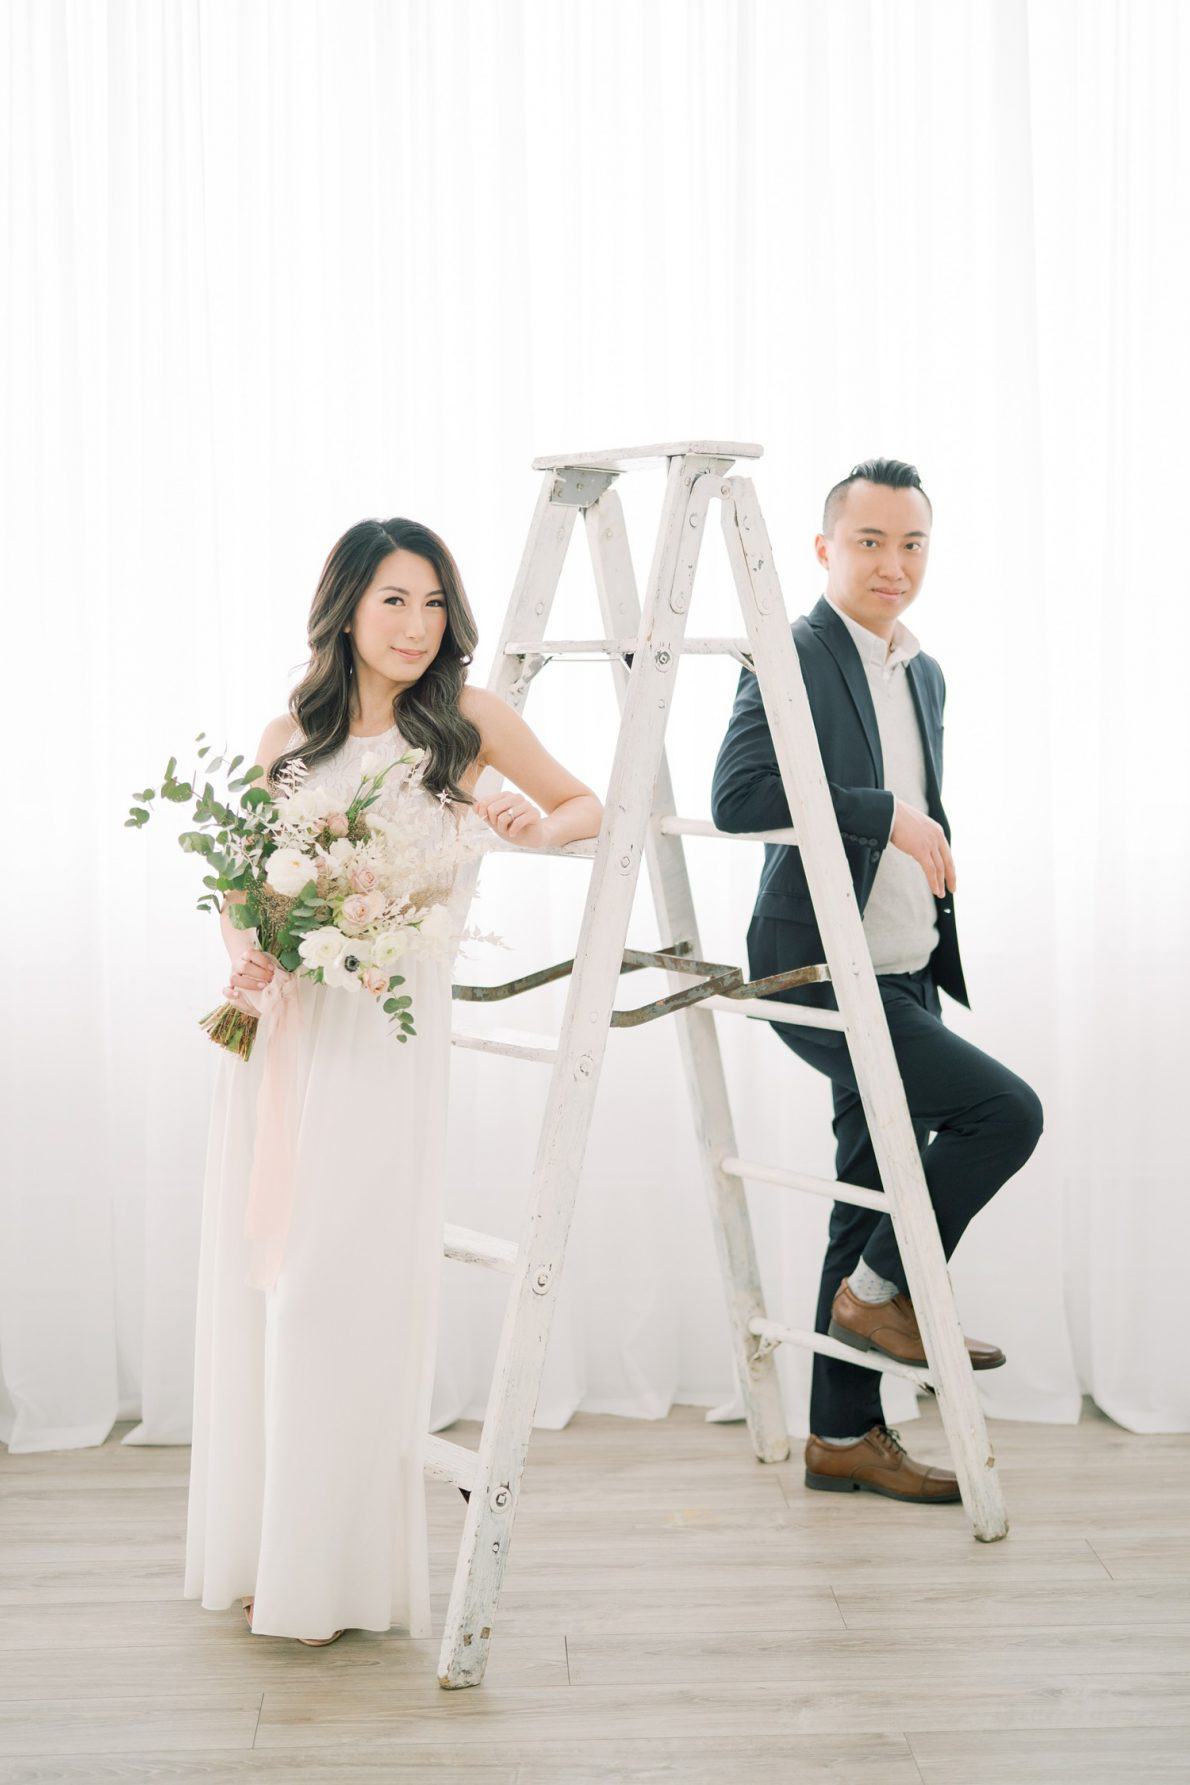 Stunning couple in Dreamy Toronto Engagement Photos Mint Room Studio Conservatory